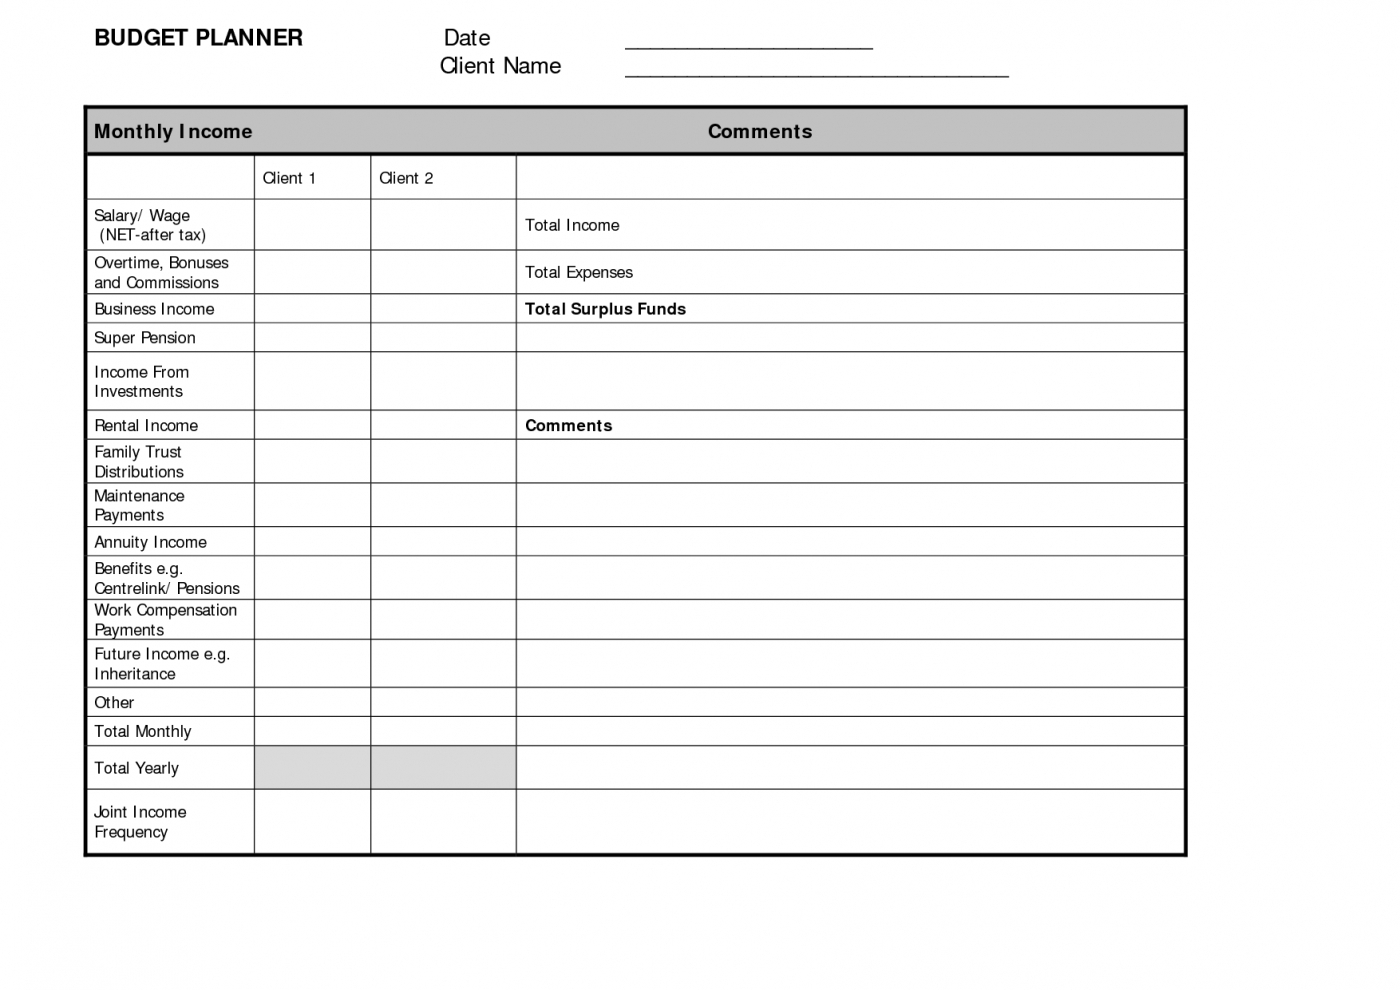 Monthly Budget Planner Template Free Download - Resourcesaver And Monthly Budget Planner Template Free Download